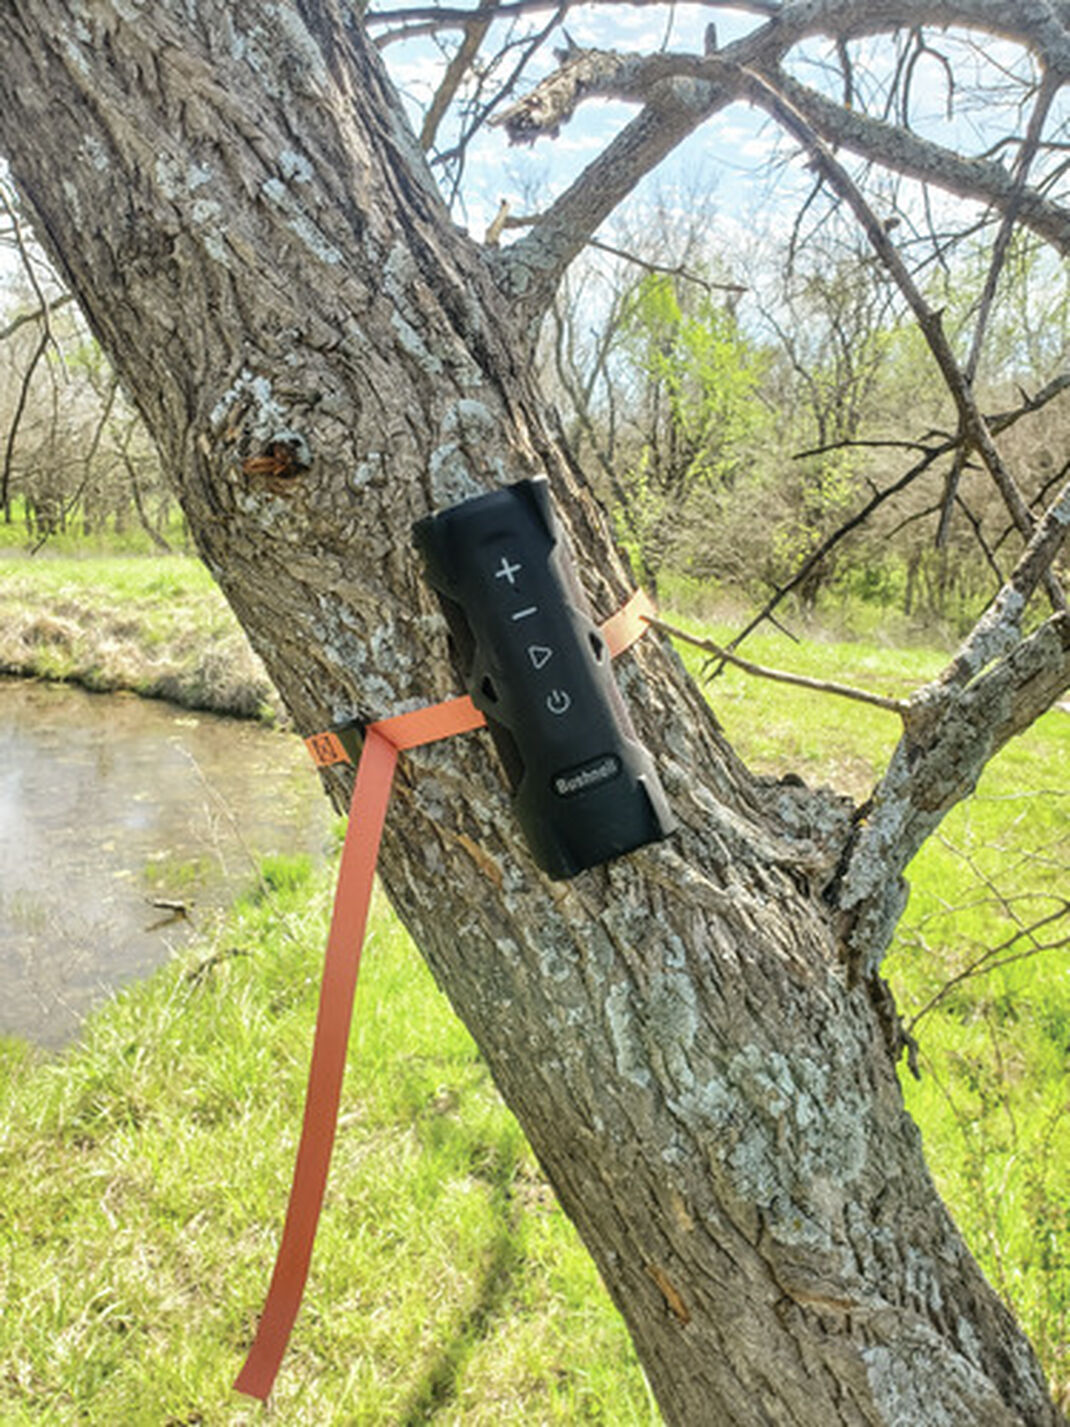 Portable Summer Tunes with the New Bushnell Outdoorsman Speaker